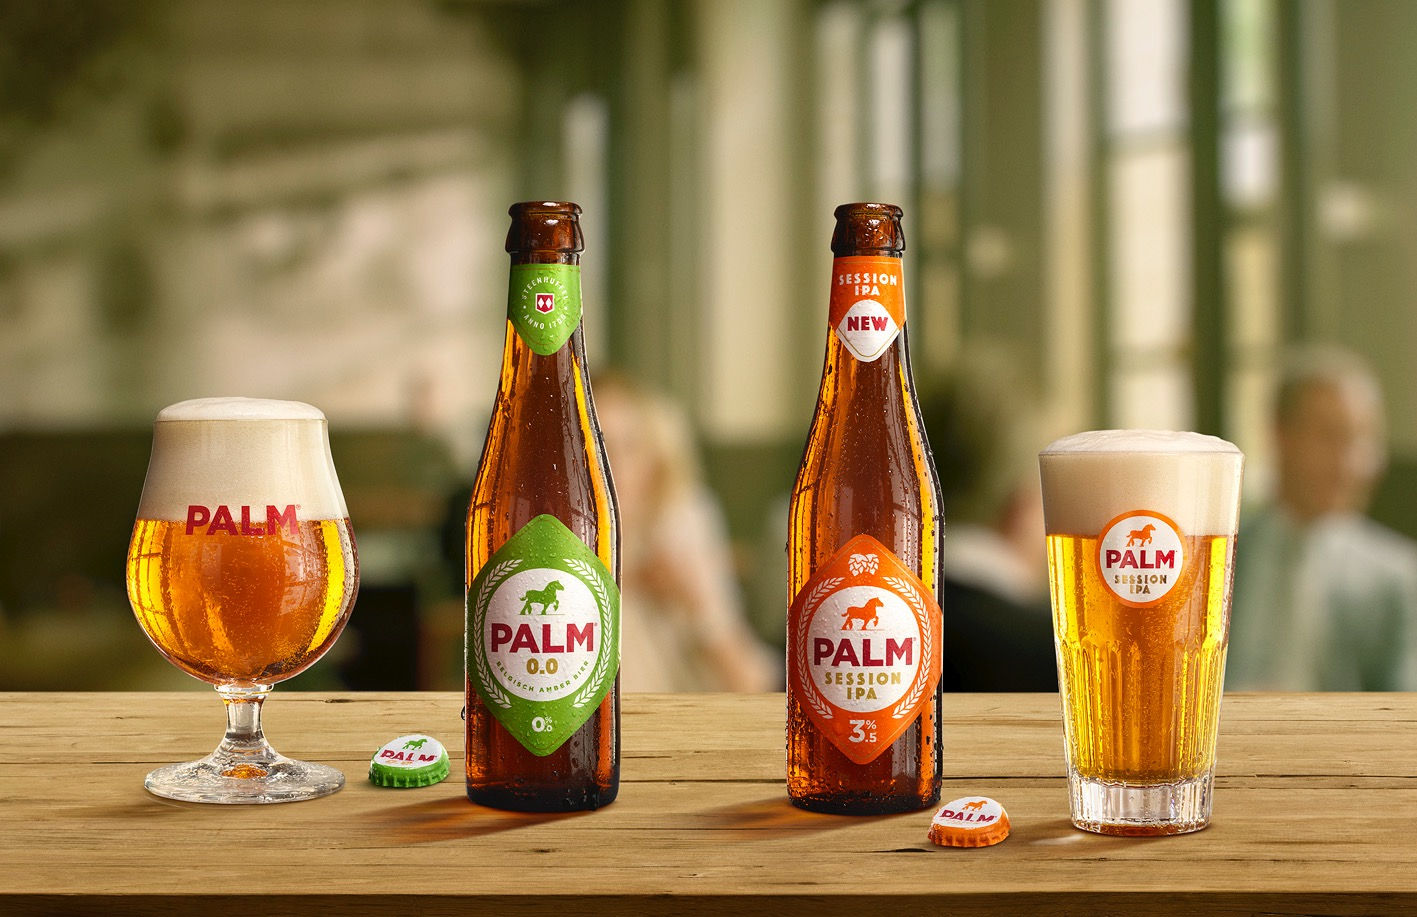 PALM_Session_IPA_0.0%_glass_bottle_previ